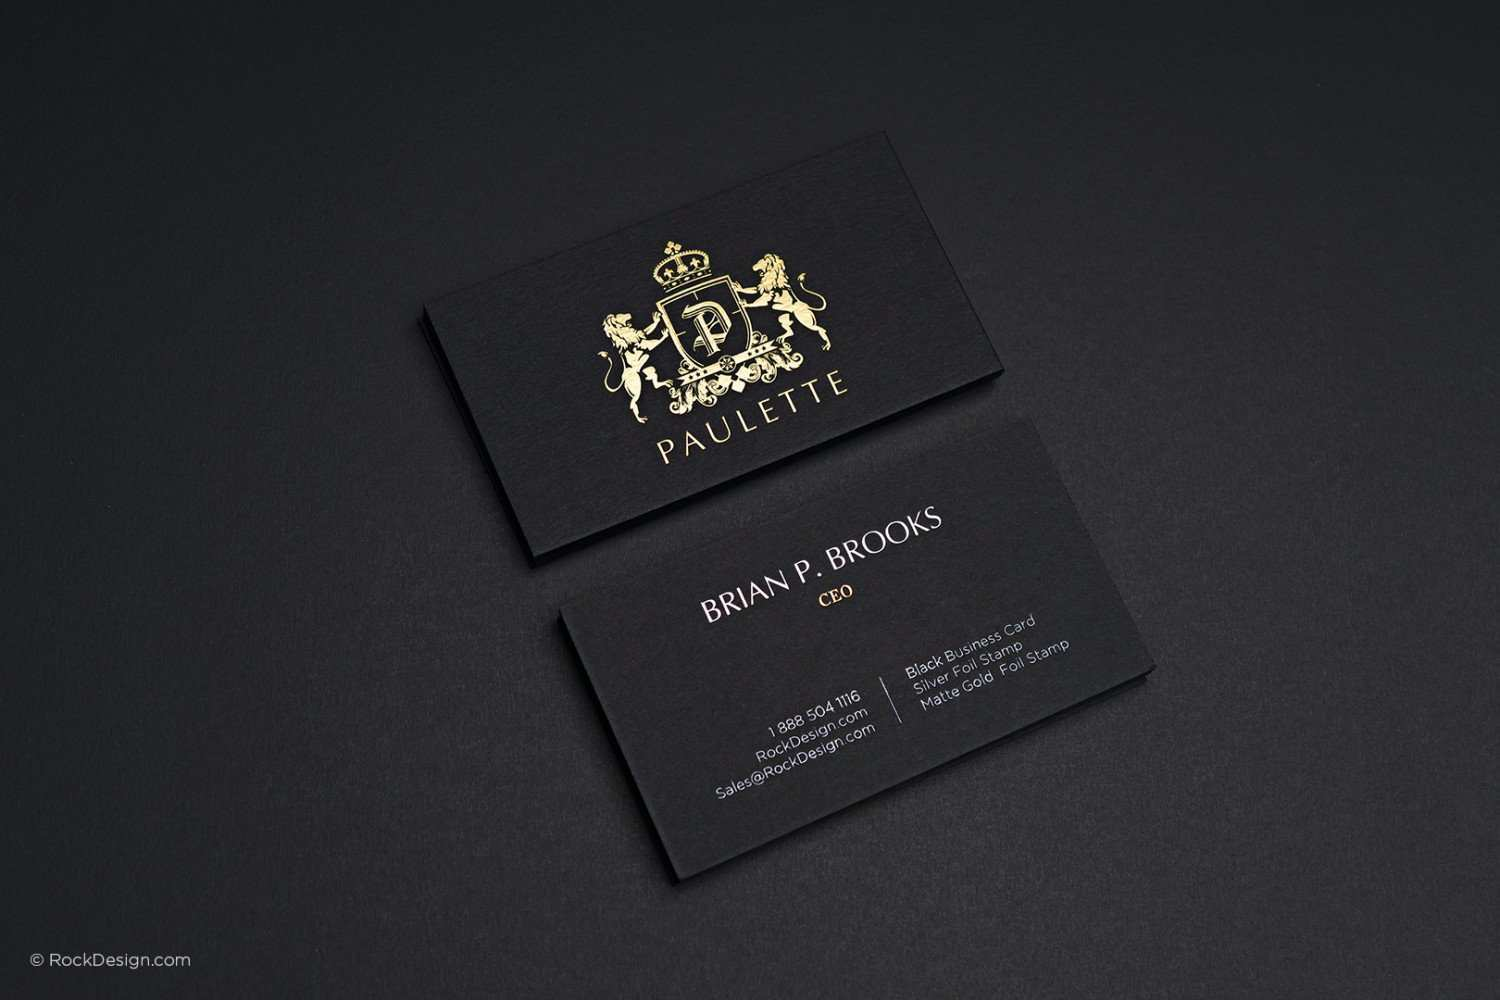 12 Customize Our Free Business Card Template Black Templates with Business Card Template Black